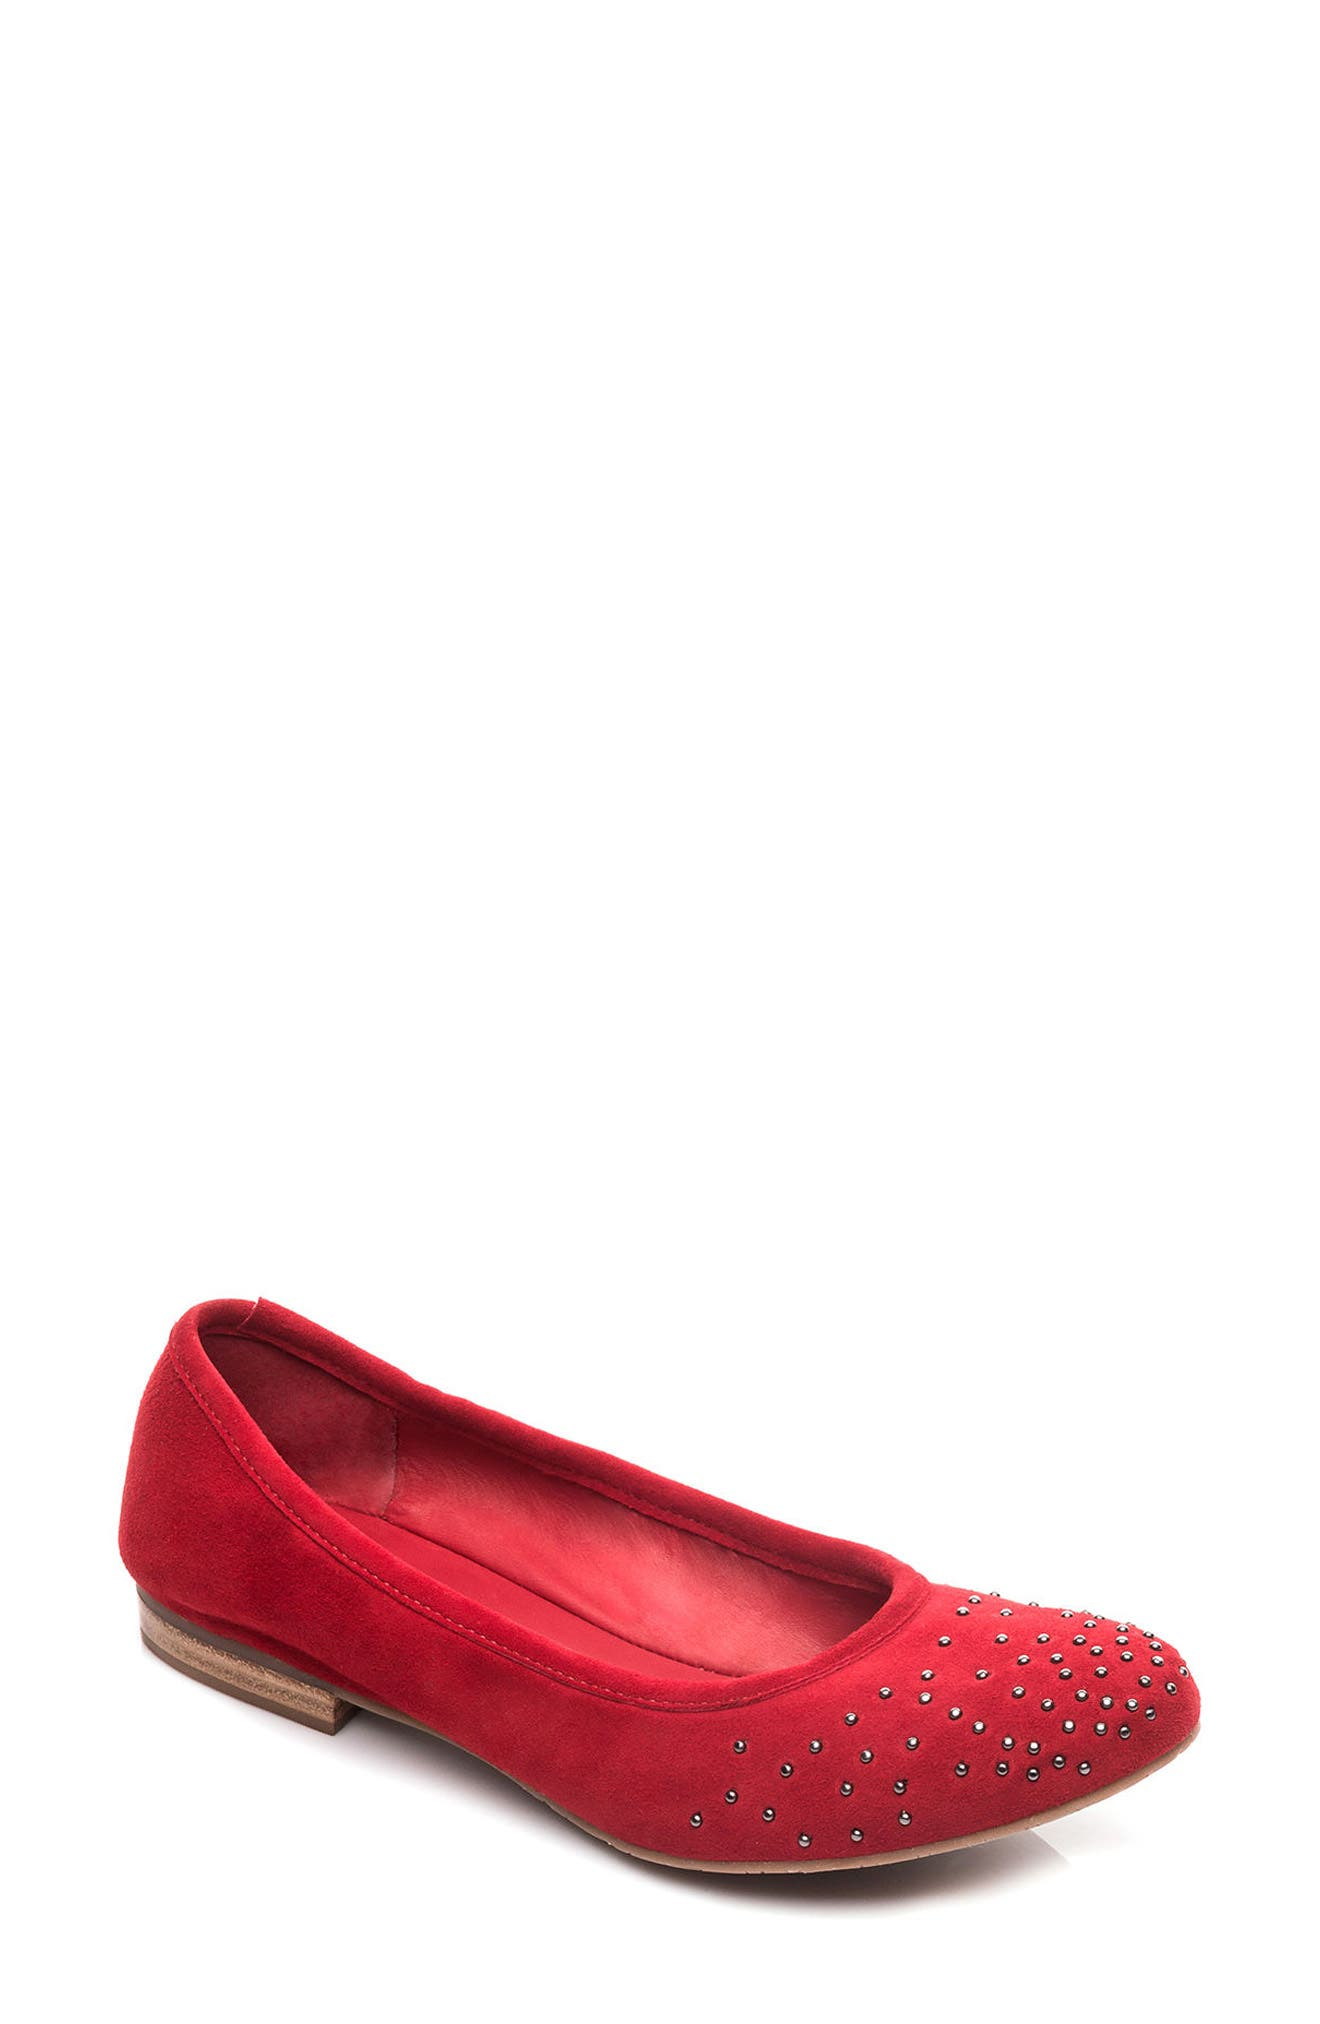 Dallas Studded Flat,                         Main,                         color, Red Suede